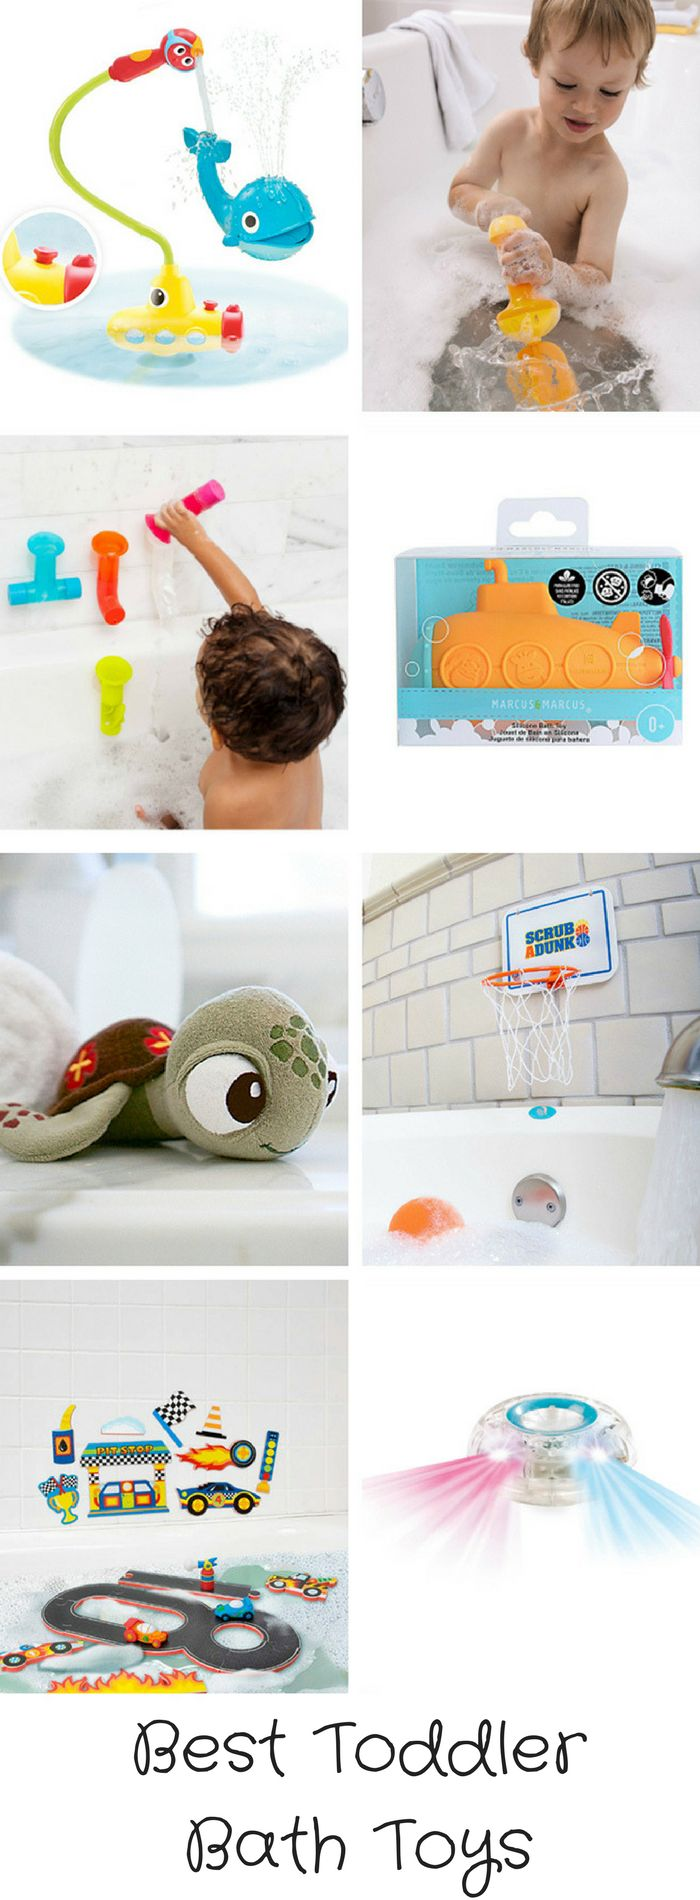 Squeaky Clean Fun: Best Bath Toys for Toddlers | Bath Fun For Kids | Favorite Bath Toys | Toddler Gift Ideas | MomTrends.com